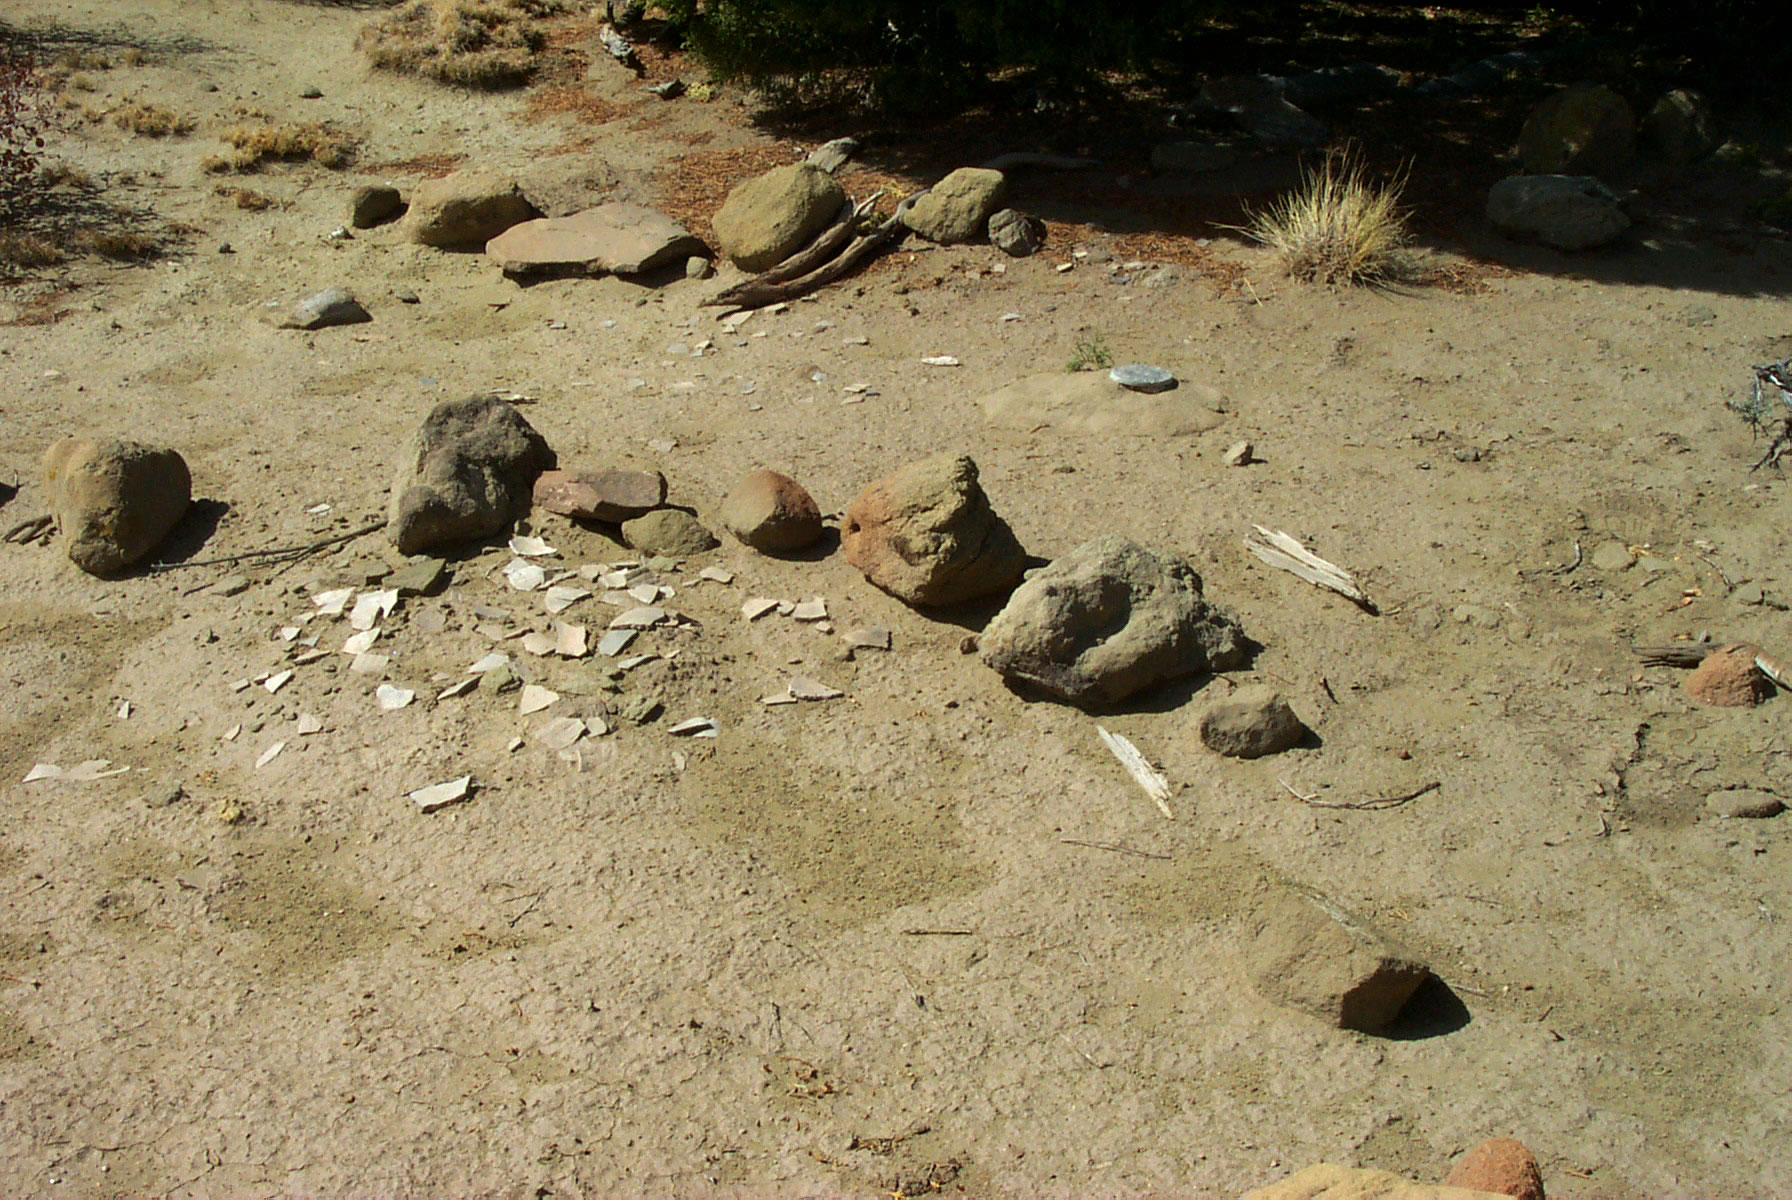 Image 7. Summit of Gobernador Knob with ceremonially arranged pottery shards, stones, and forked stick. The summit benchmark is located in the right center of photo. Permission from the author/photographer, Kevin Blake (http://www.k-state.edu/geography/kblake/), September 2000.